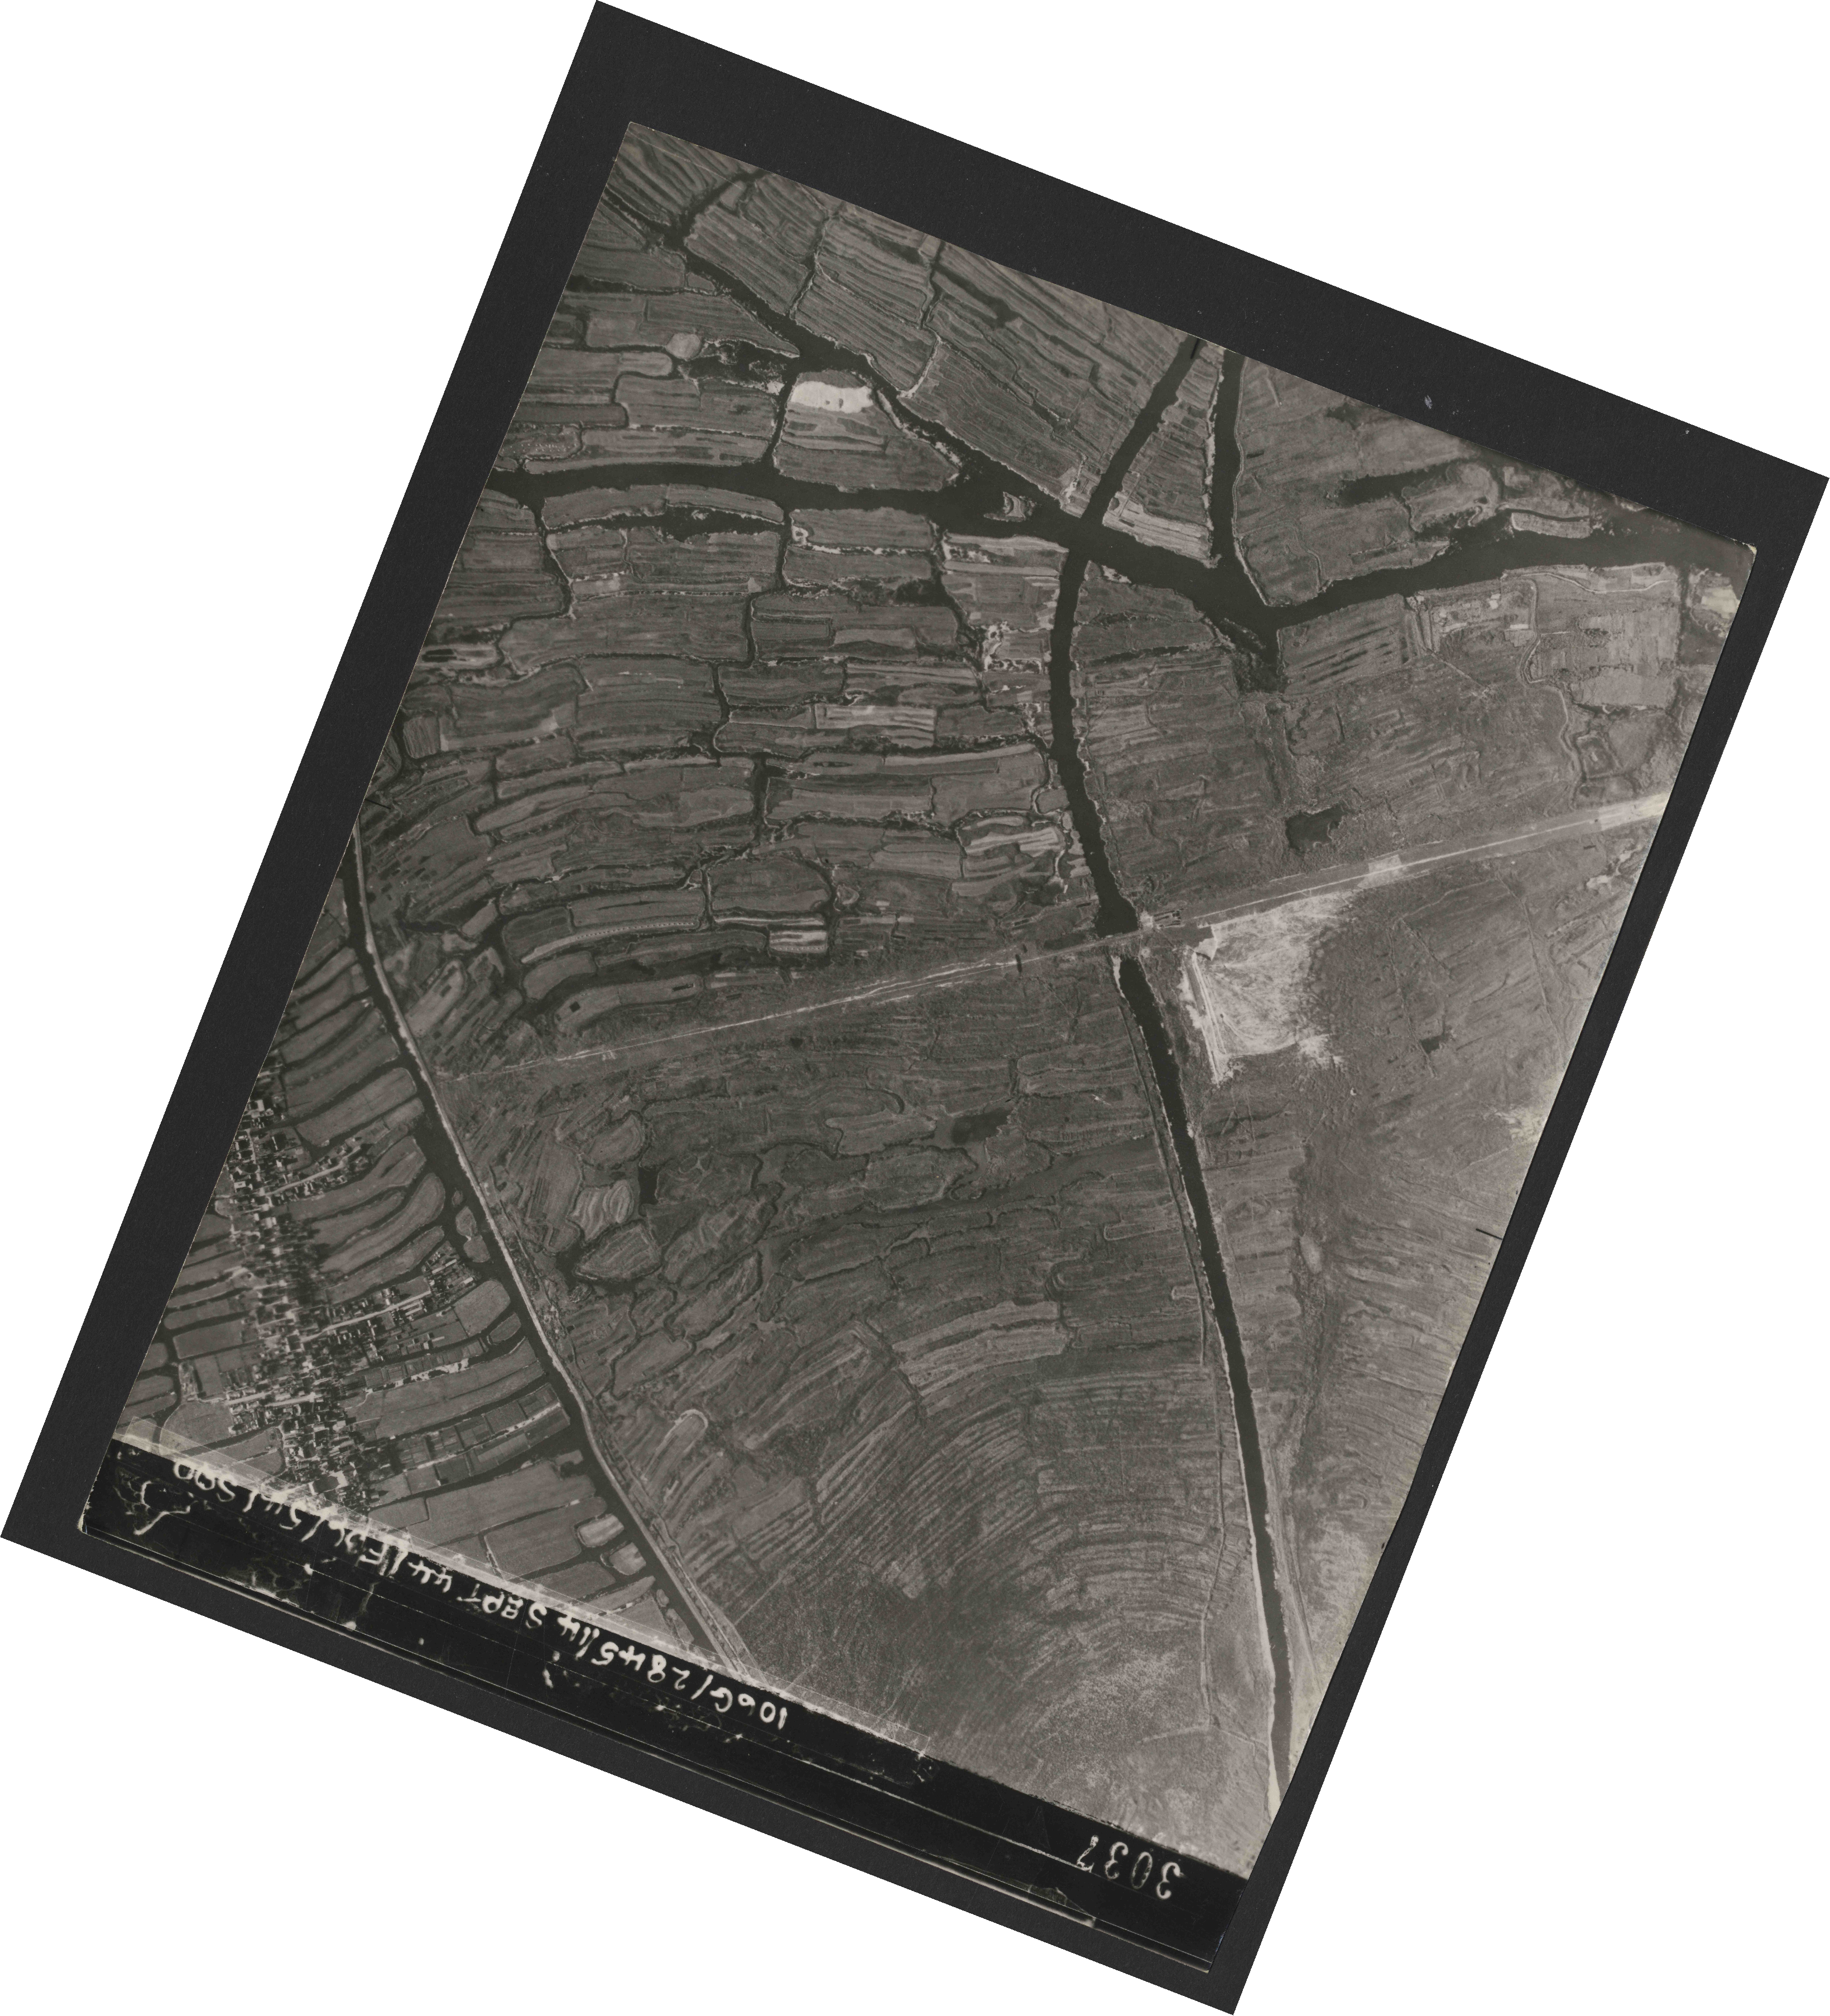 Collection RAF aerial photos 1940-1945 - flight 299, run 08, photo 3037